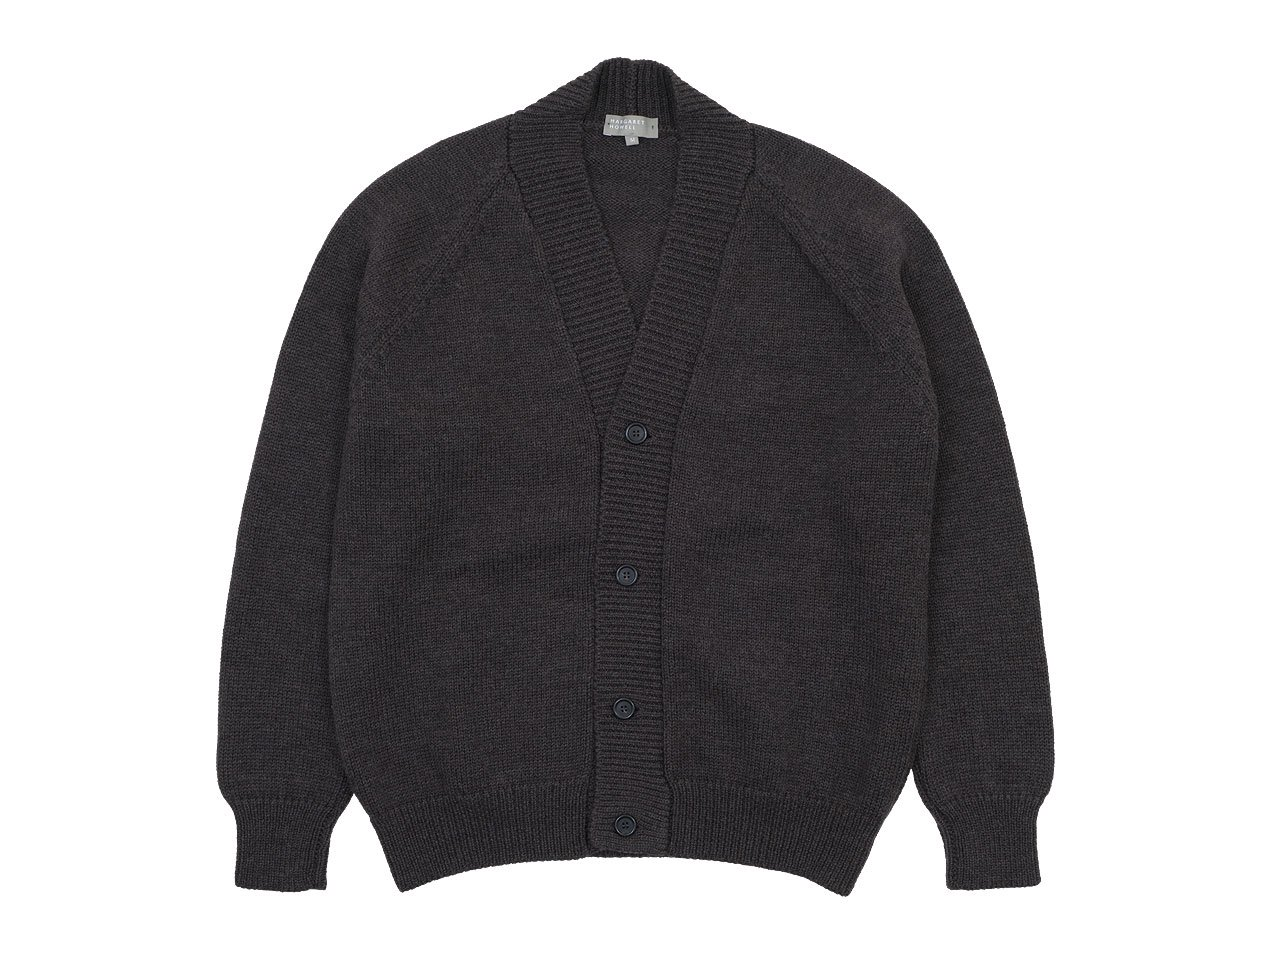 MARGARET HOWELL FINE MERINO WOOL KNIT CARDIGAN 052BROWN 〔メンズ〕